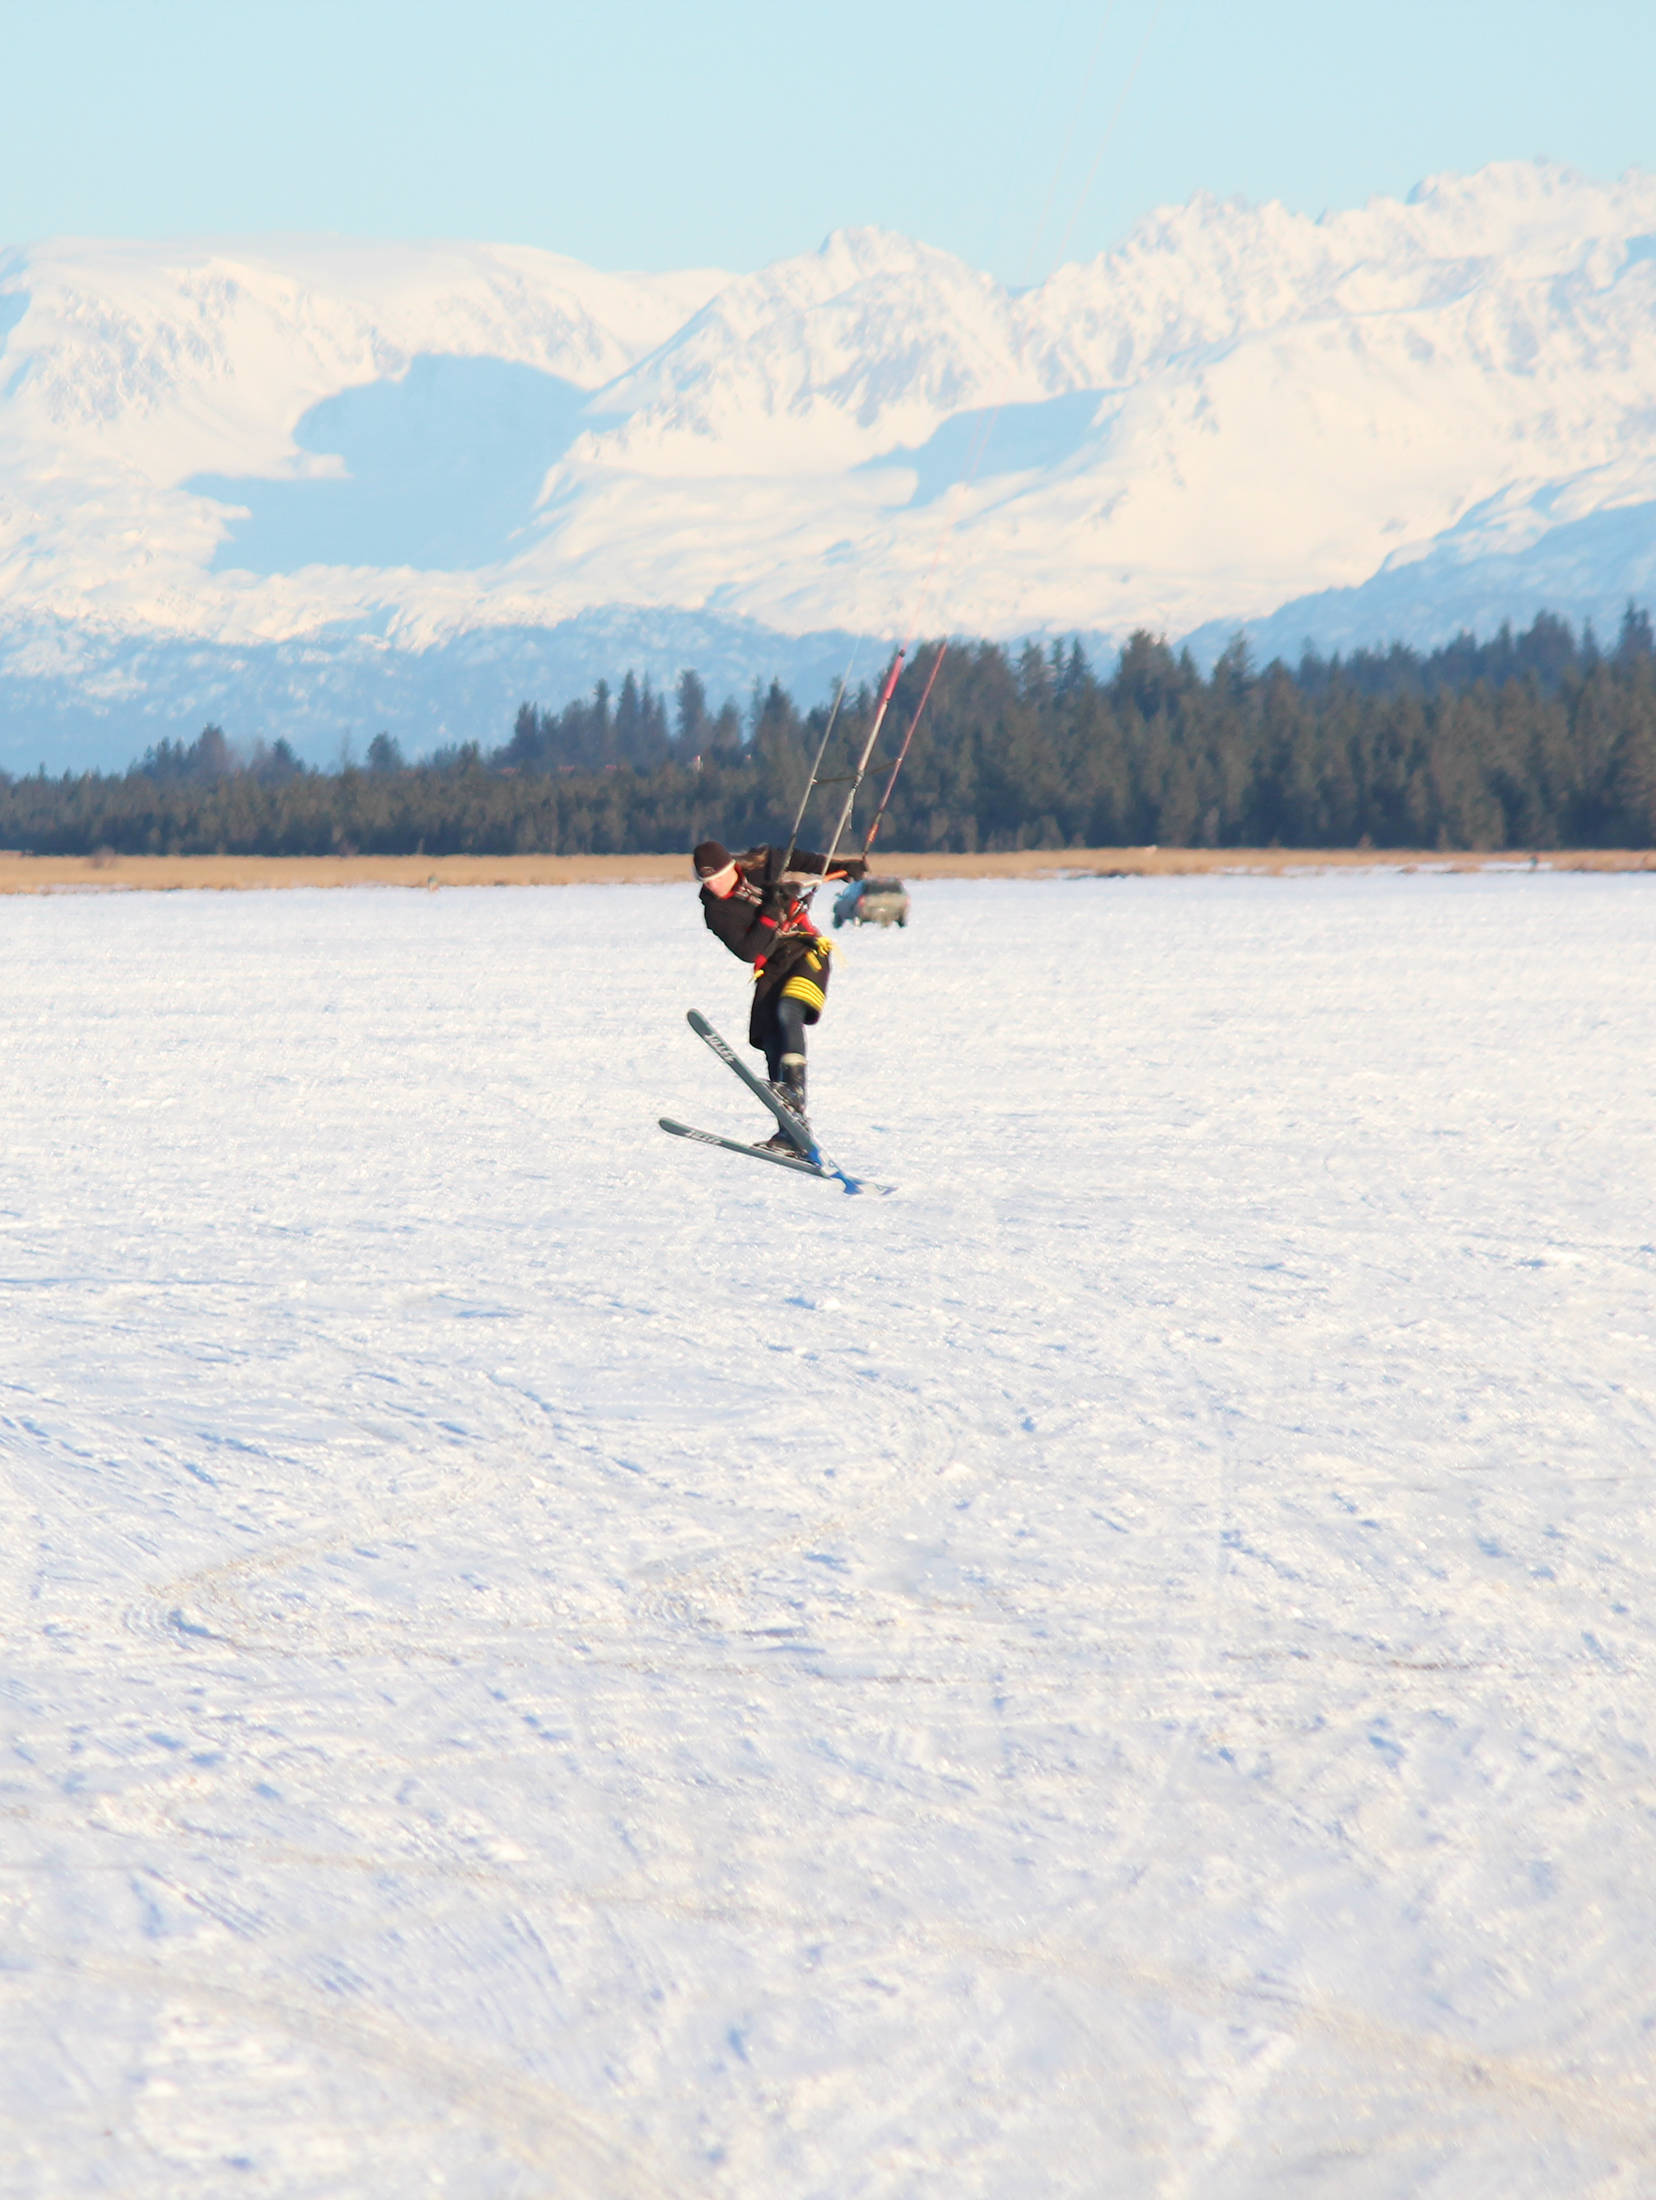 A man catches some air while snowkiting, or kite skiing, on Beluga Lake on Saturday, Feb. 3, 2018 in Homer, Alaska. Outdoor enthusiasts use the power provided by a large kite on a windy day to glide across snow or ice. (Photo by Megan Pacer/Homer News)